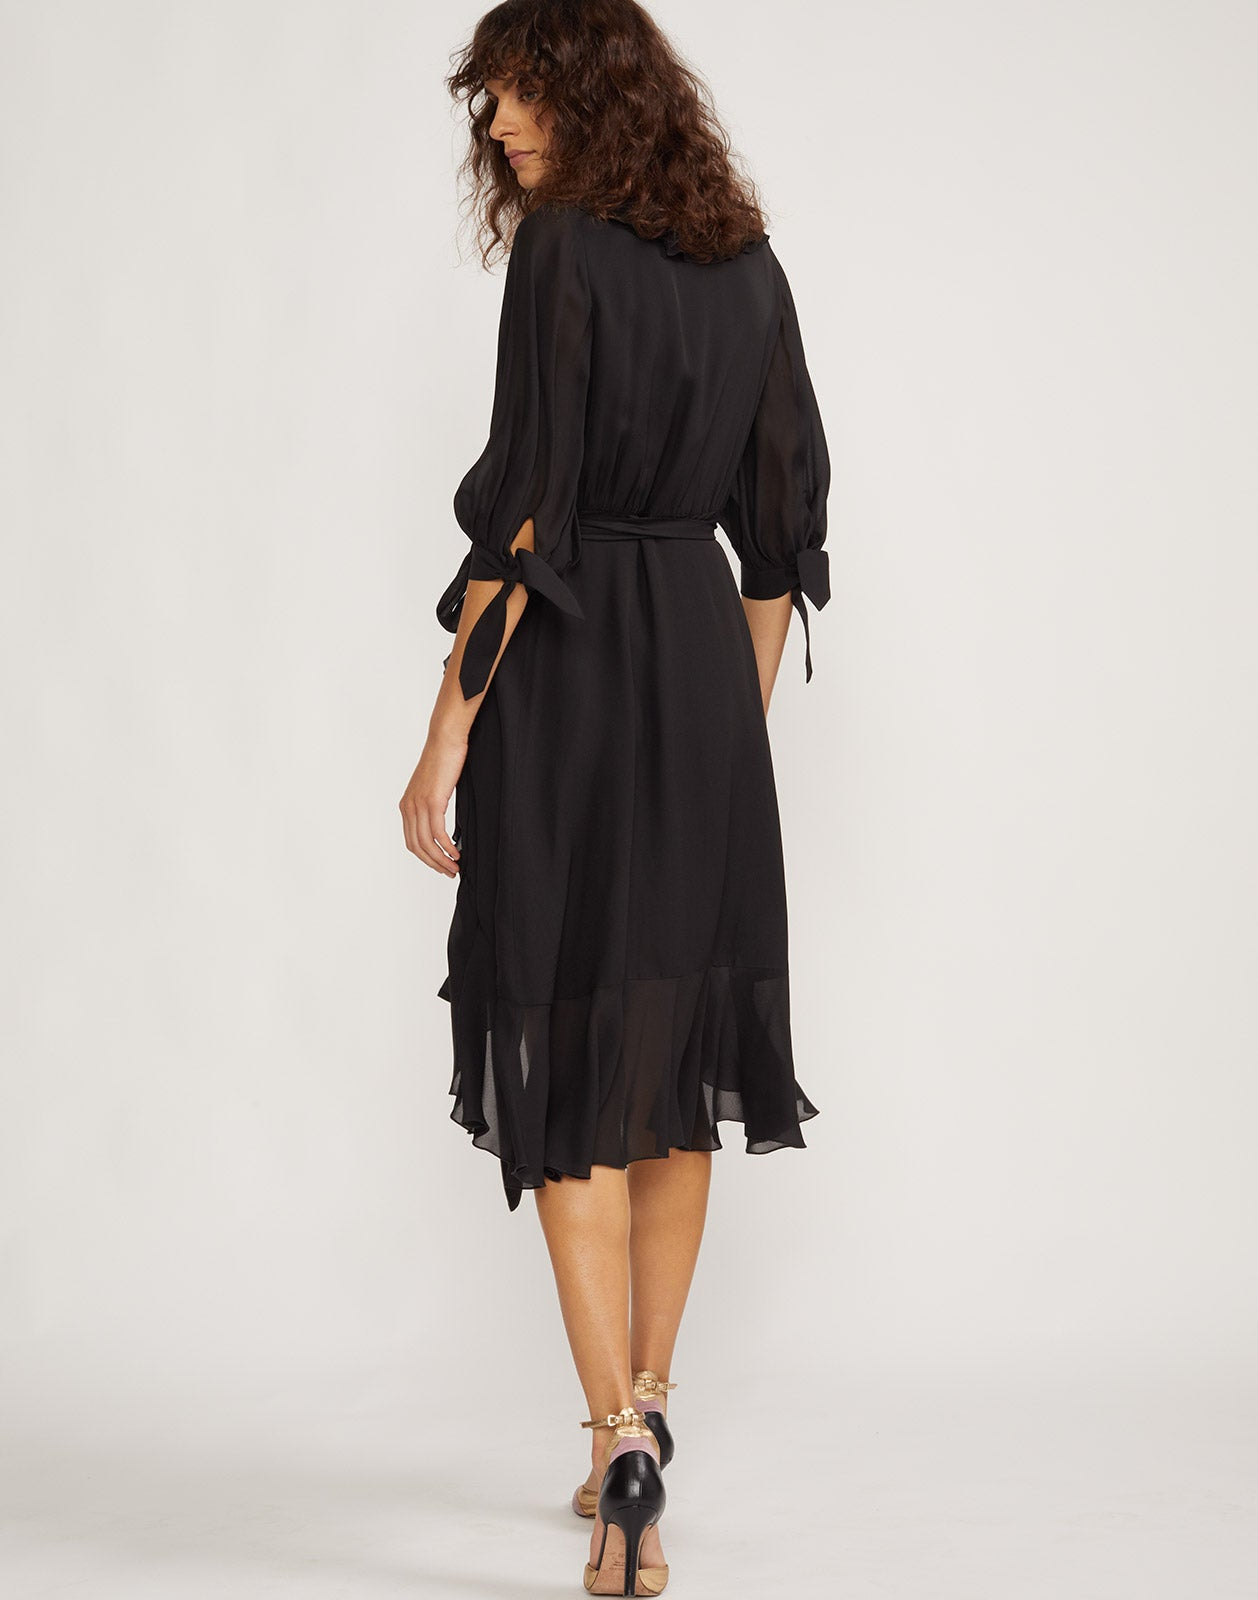 Back view of Genevieve ruffle wrap dress.